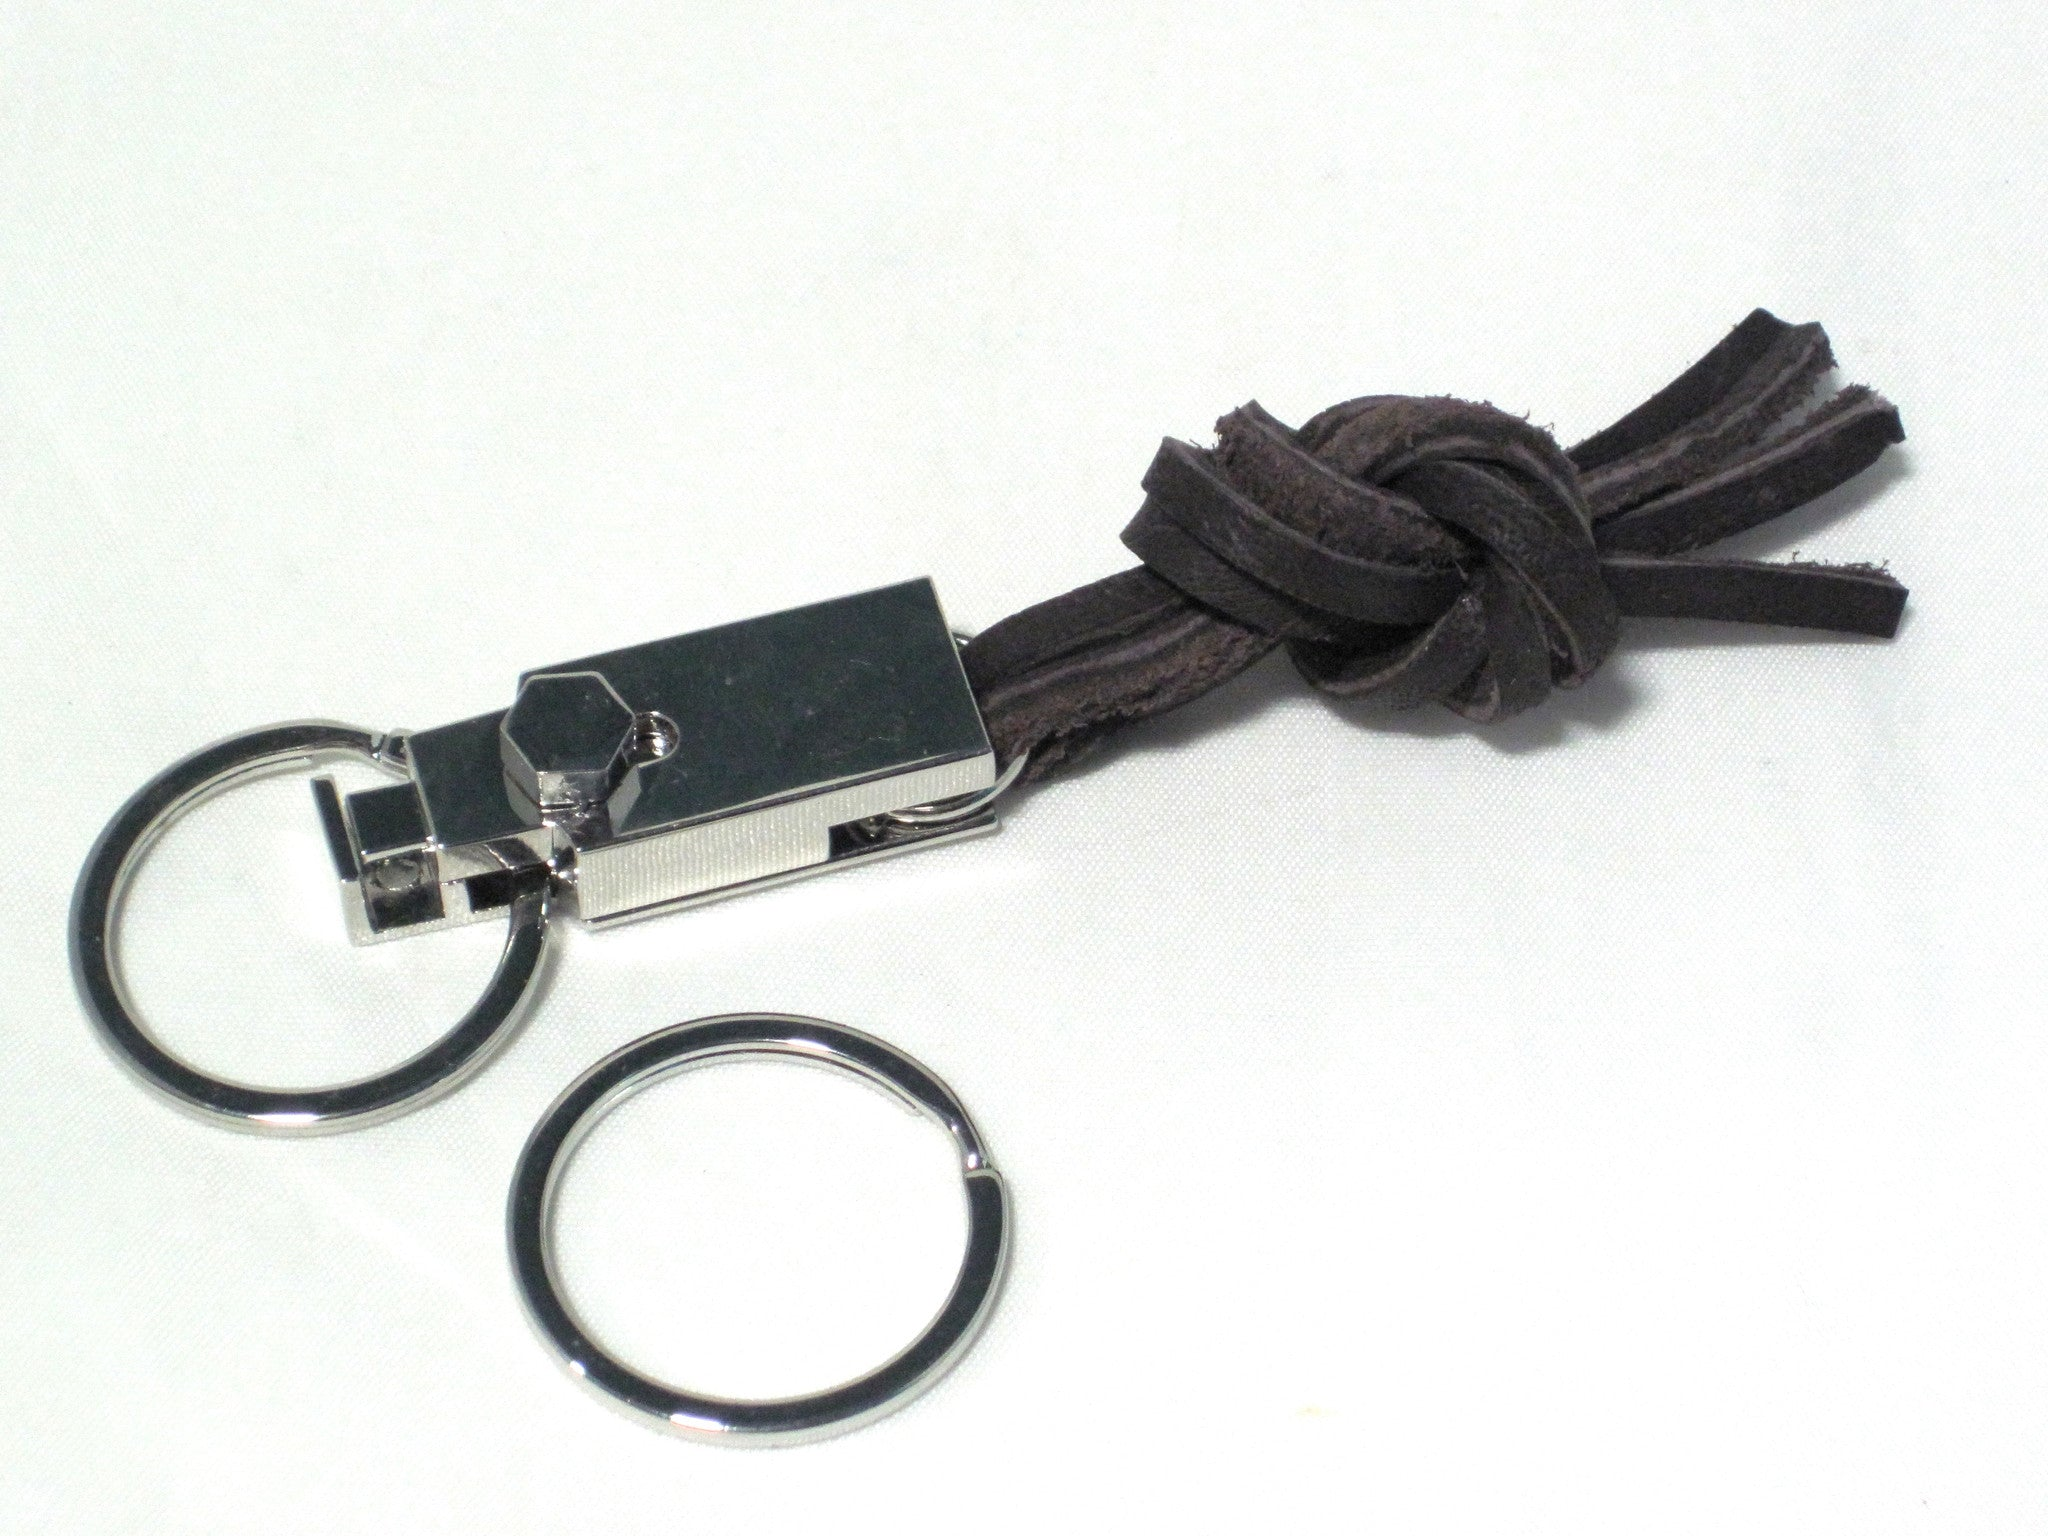 Leather knot key chain by nyet jewelry.